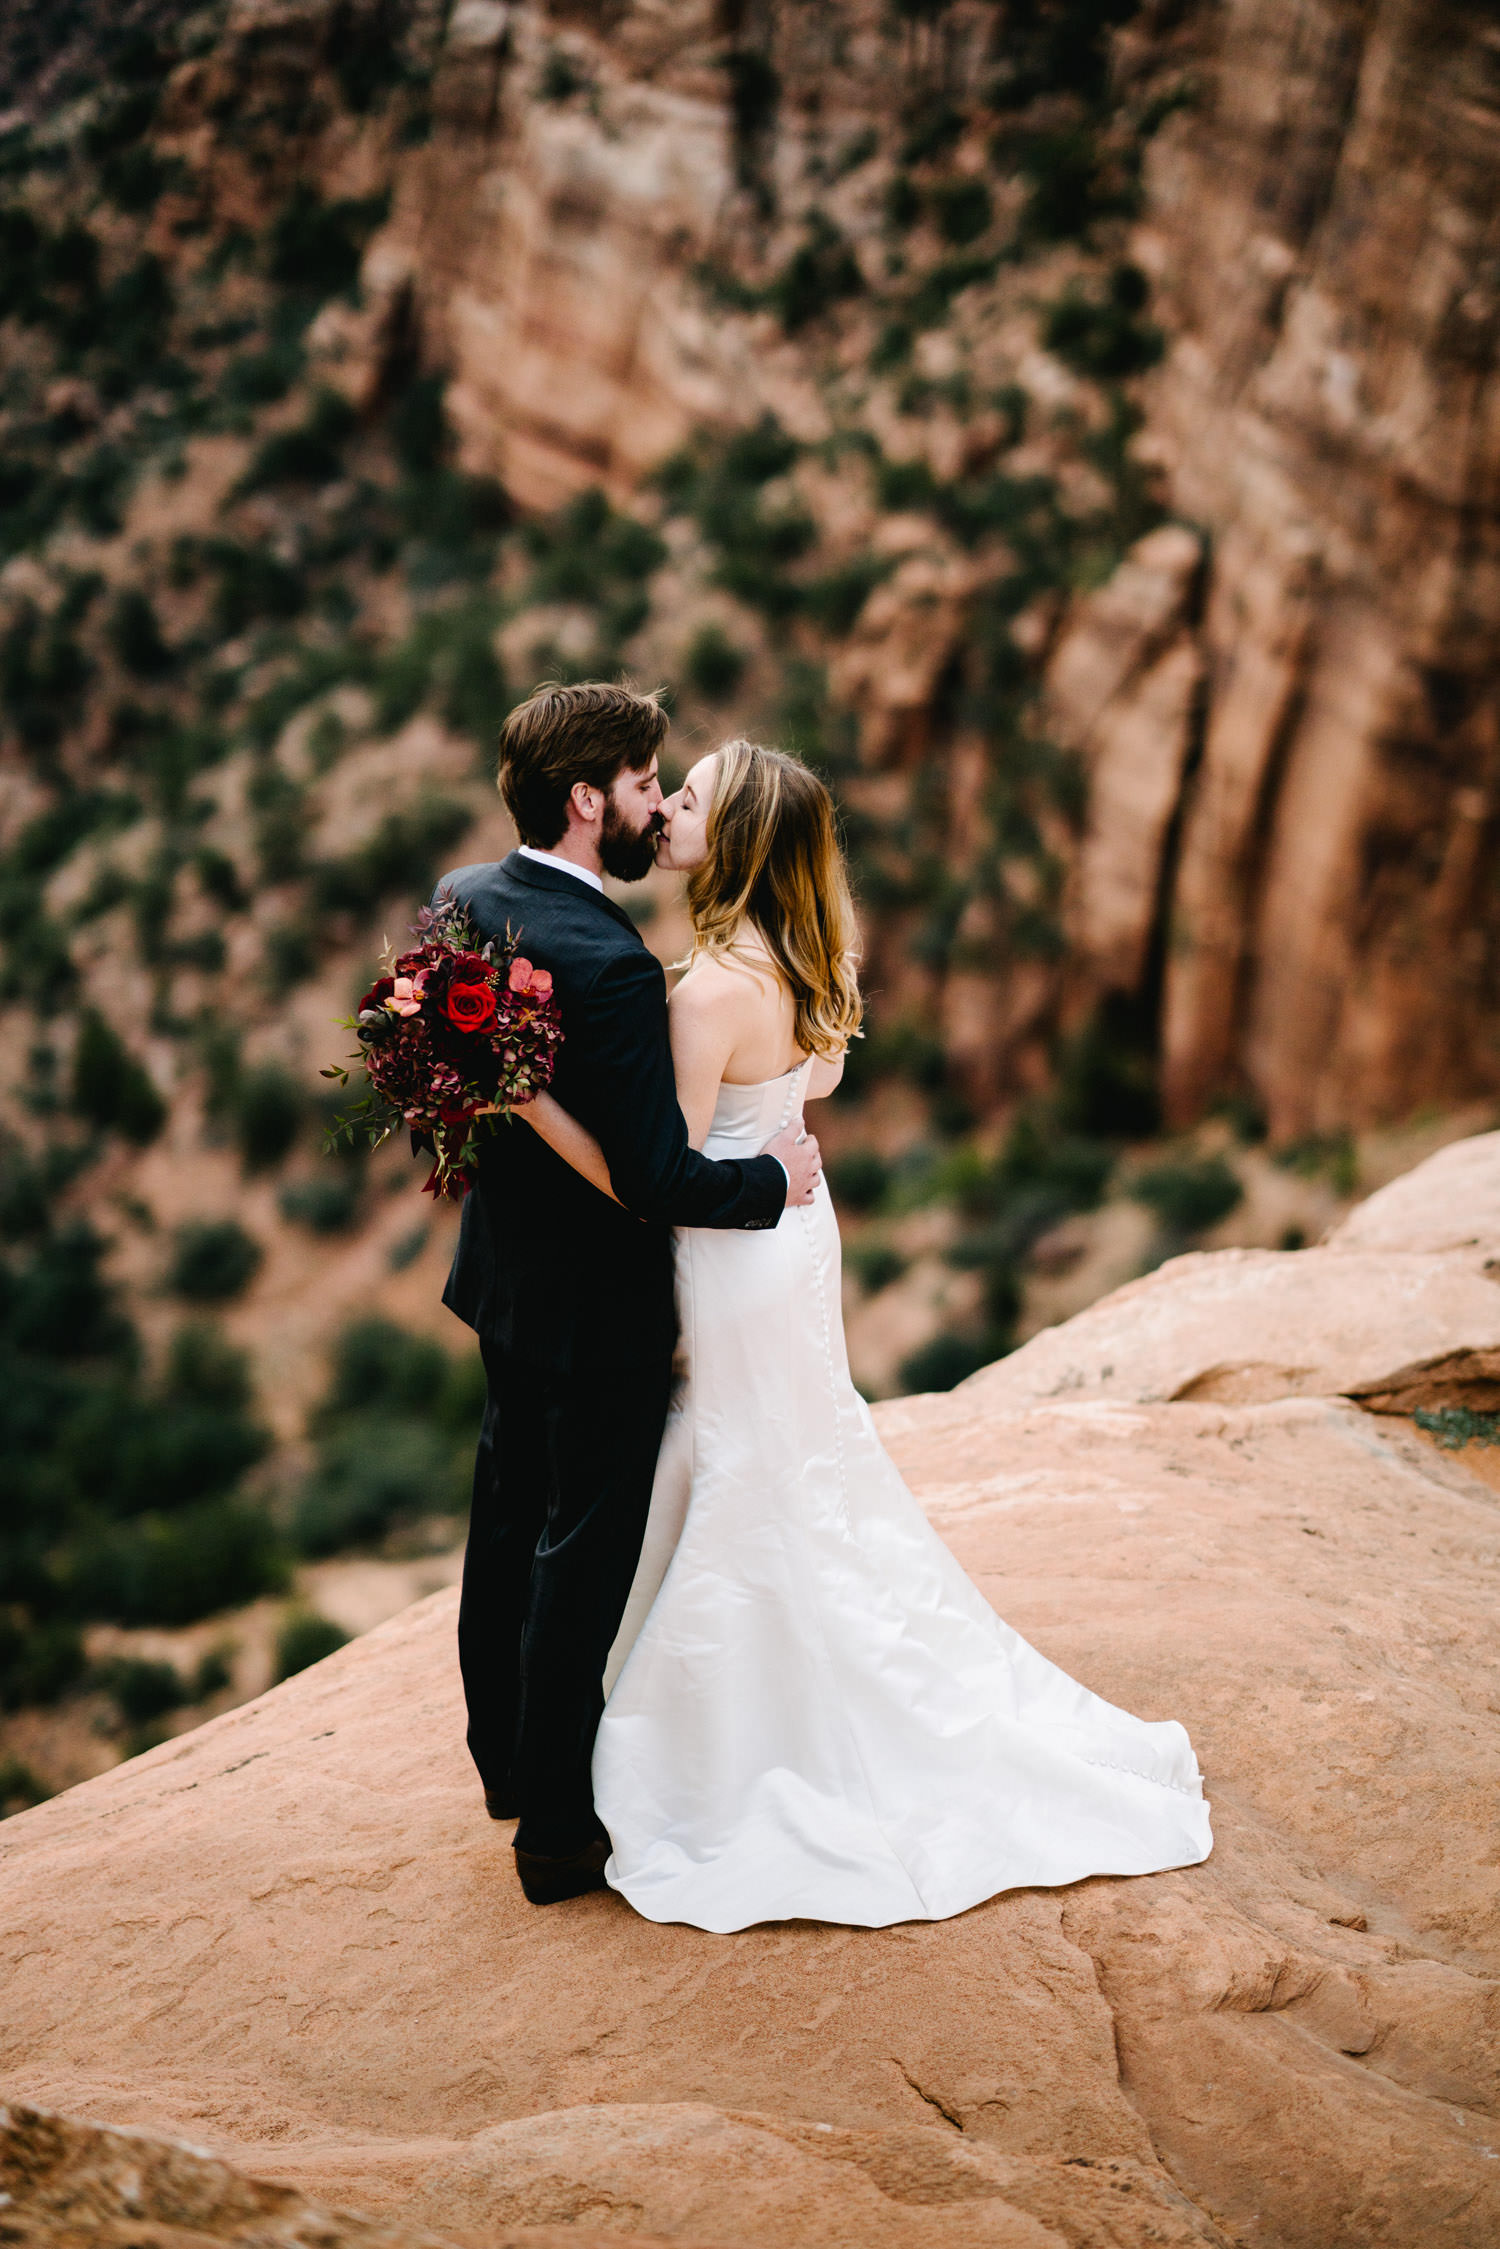 zionnationalpark_utah_destinationweddingphotographer_austendiamondphotography-9